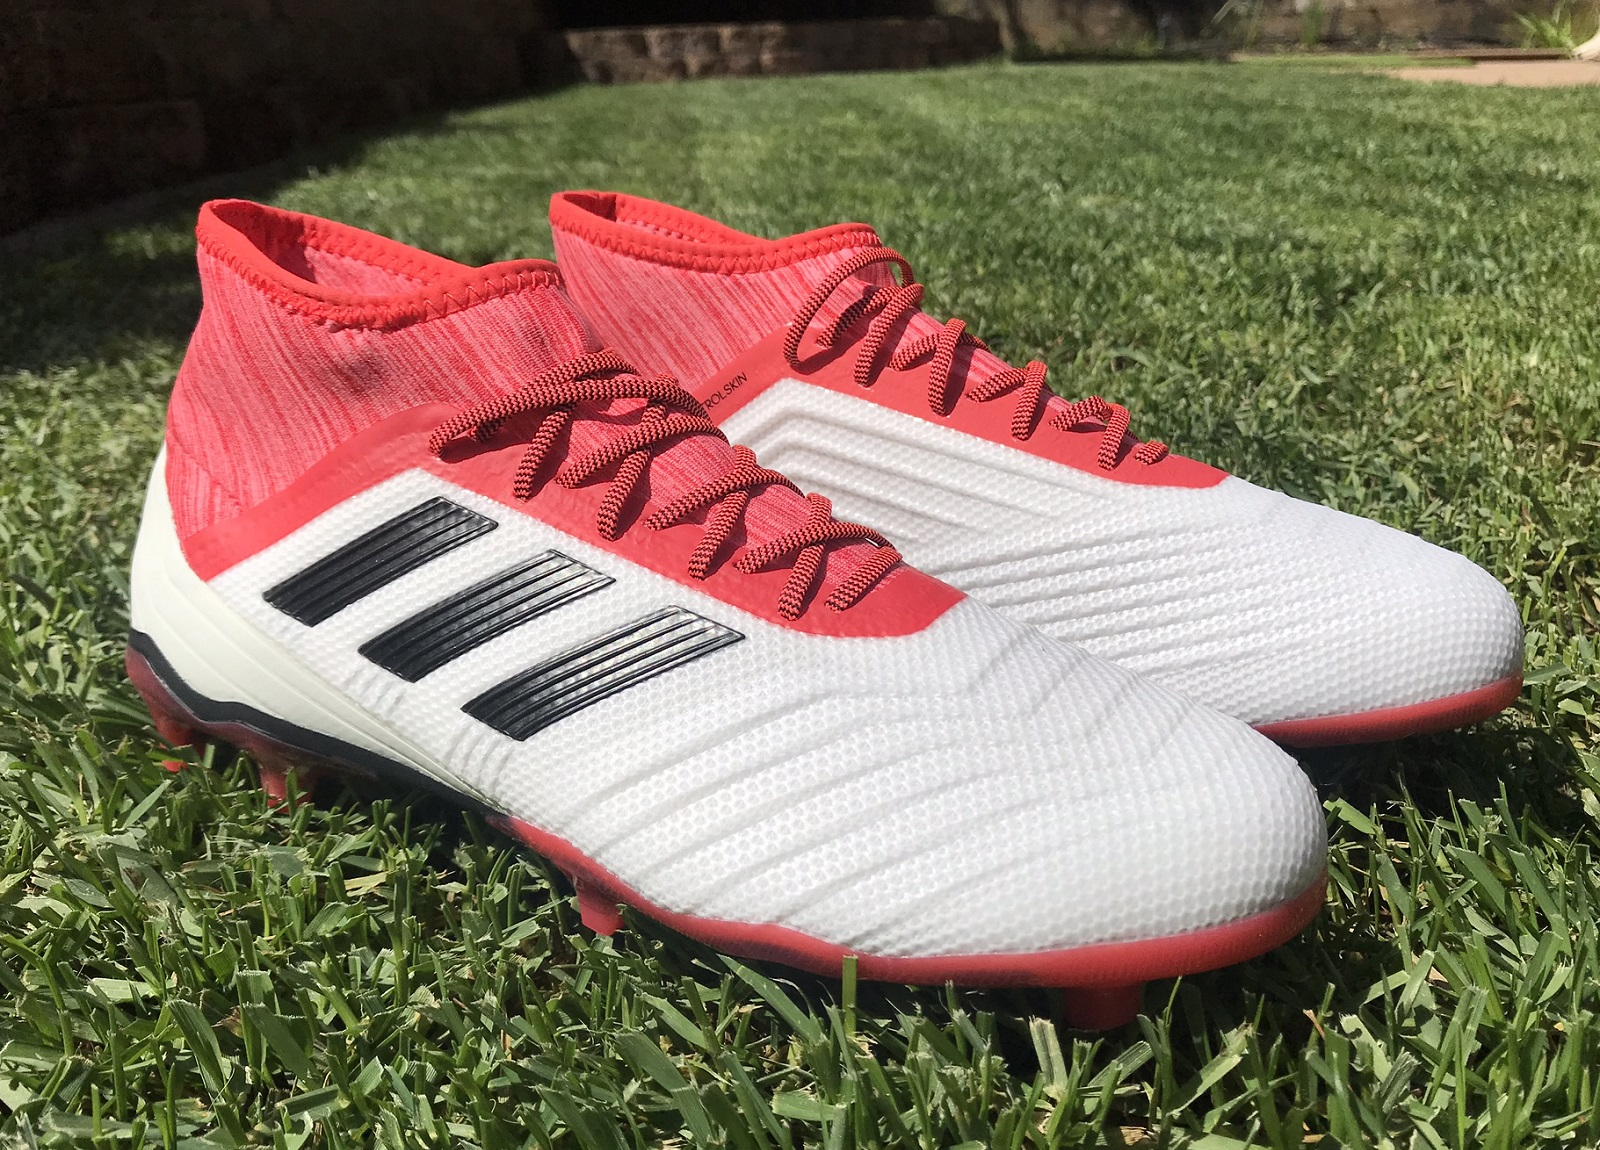 Adidas PREDATOR 18+ Test and Review